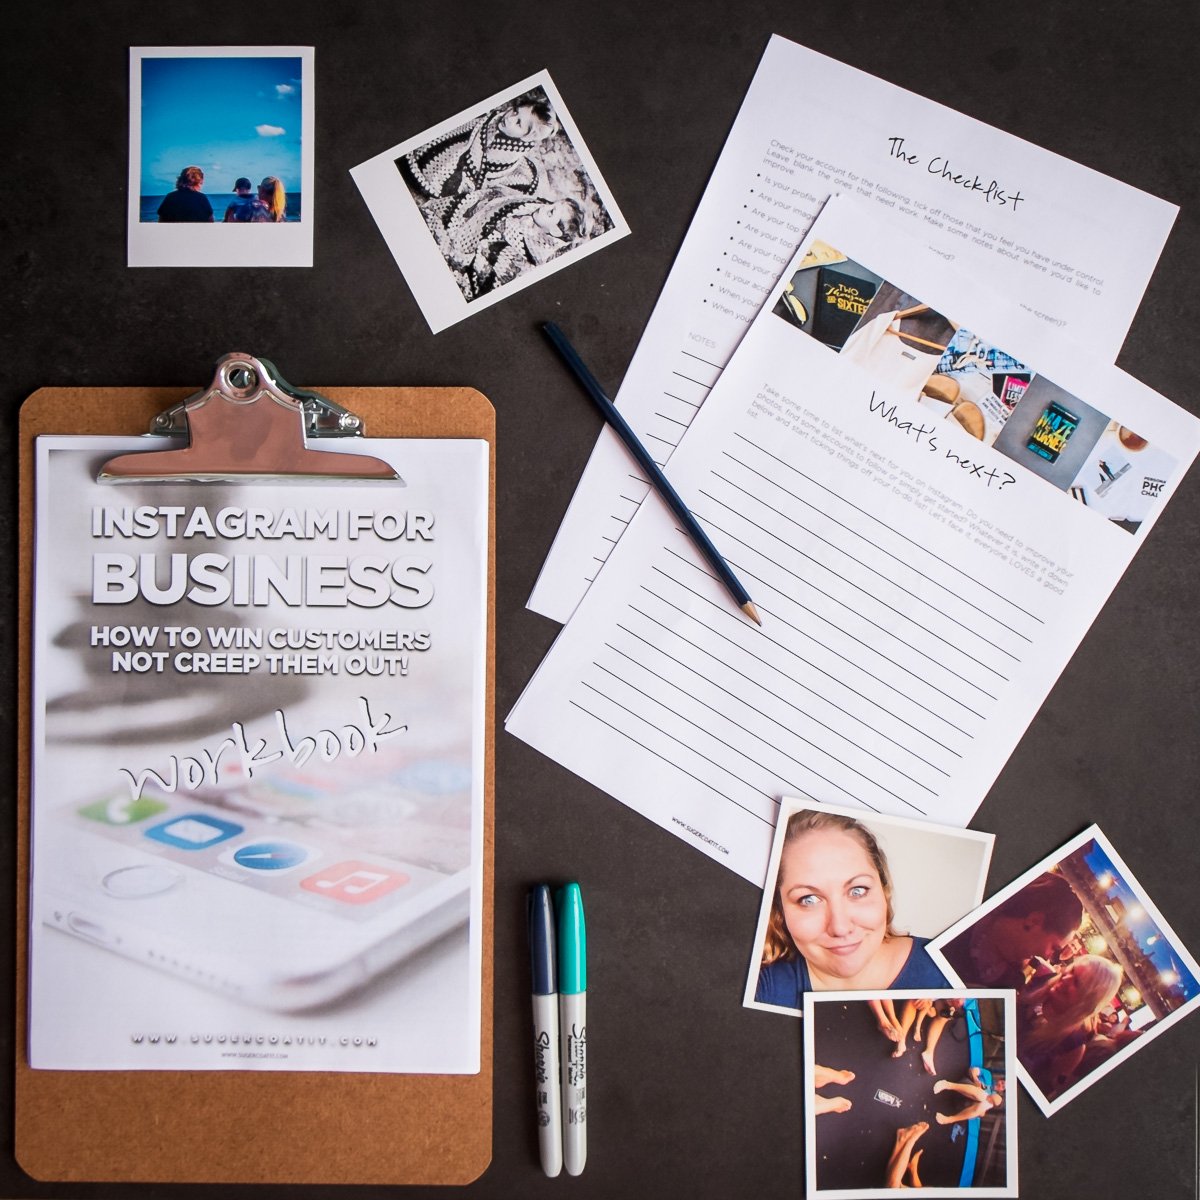 Suger's instagram for business workbook - How to win customer not creep them out.